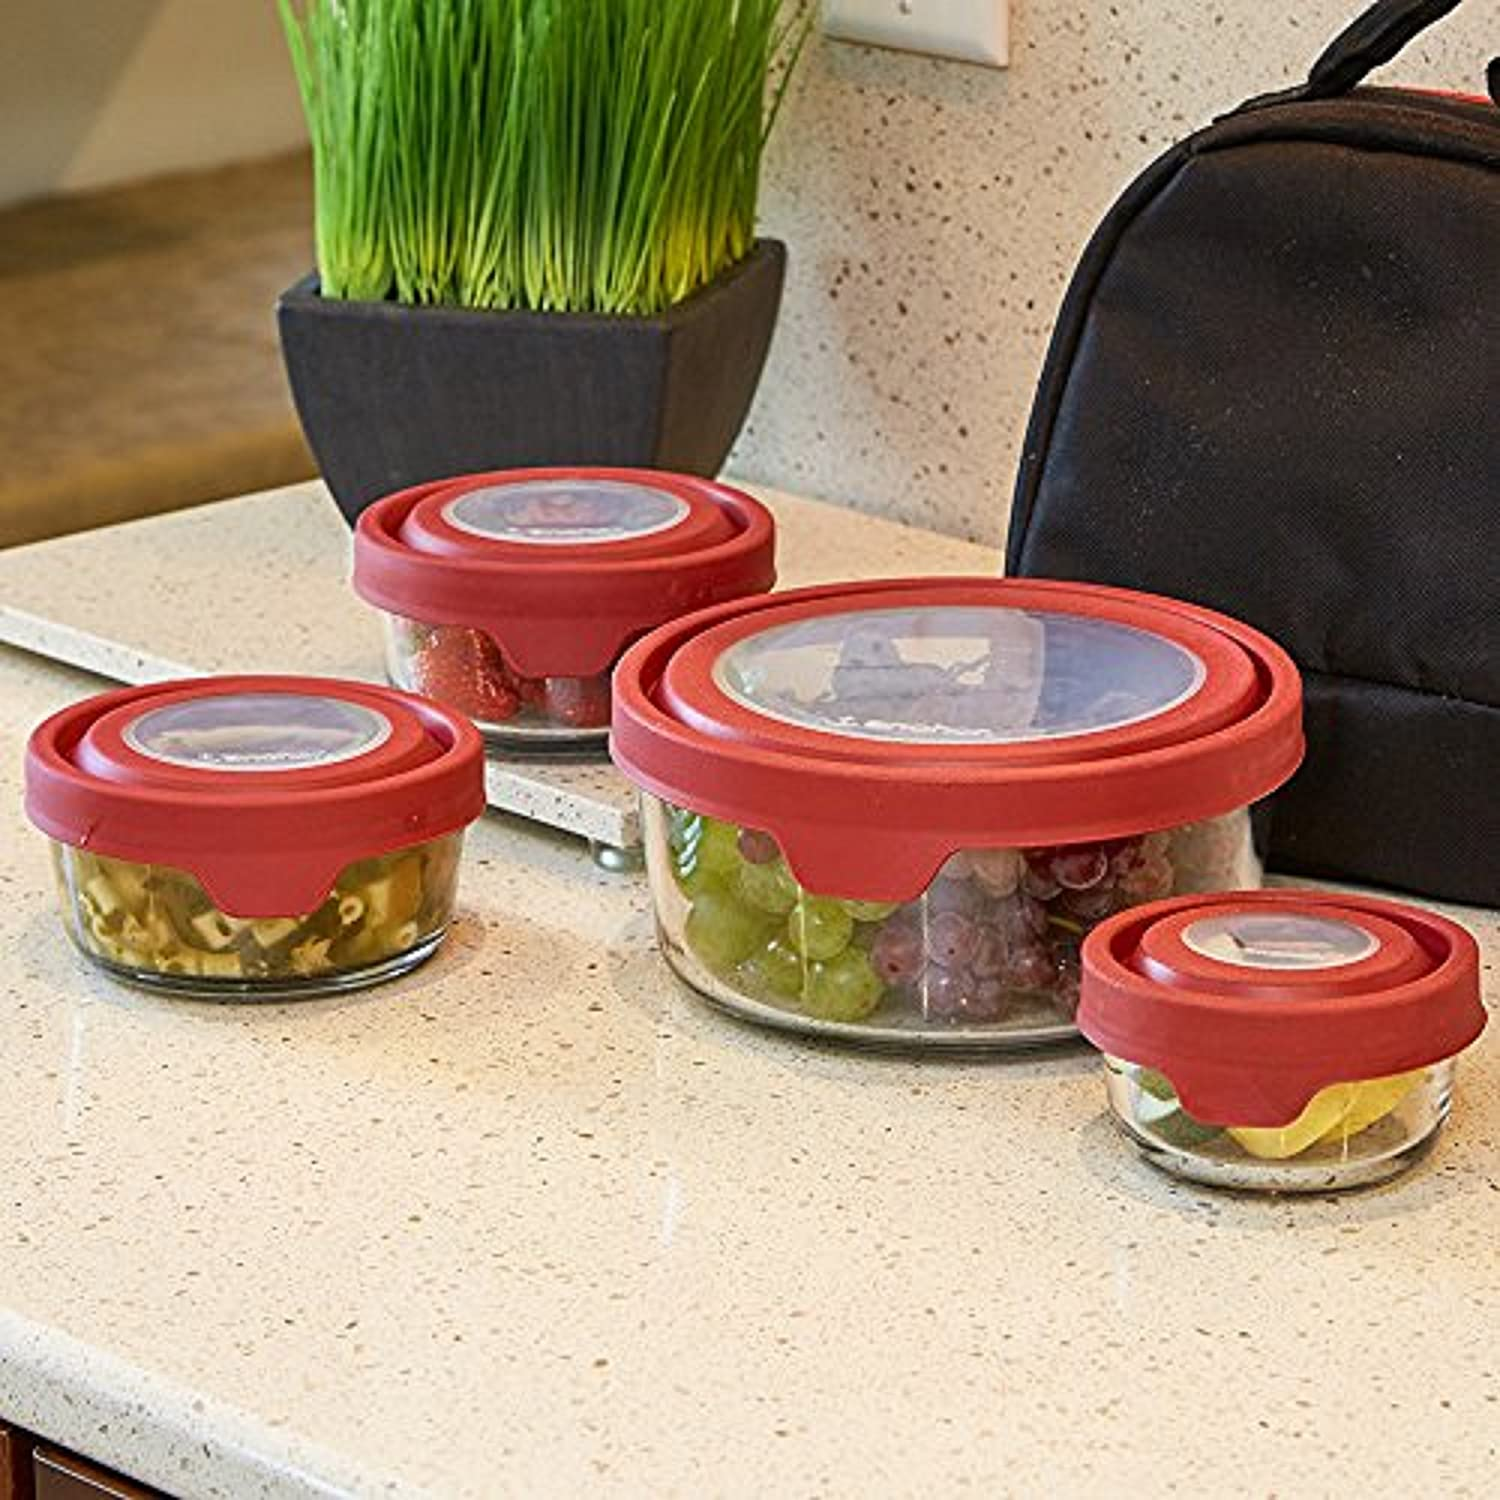 Anchor Hocking TrueSeal Glass Food Storage Containers with Lids, Green, 10-Piece Set 12207ECOM